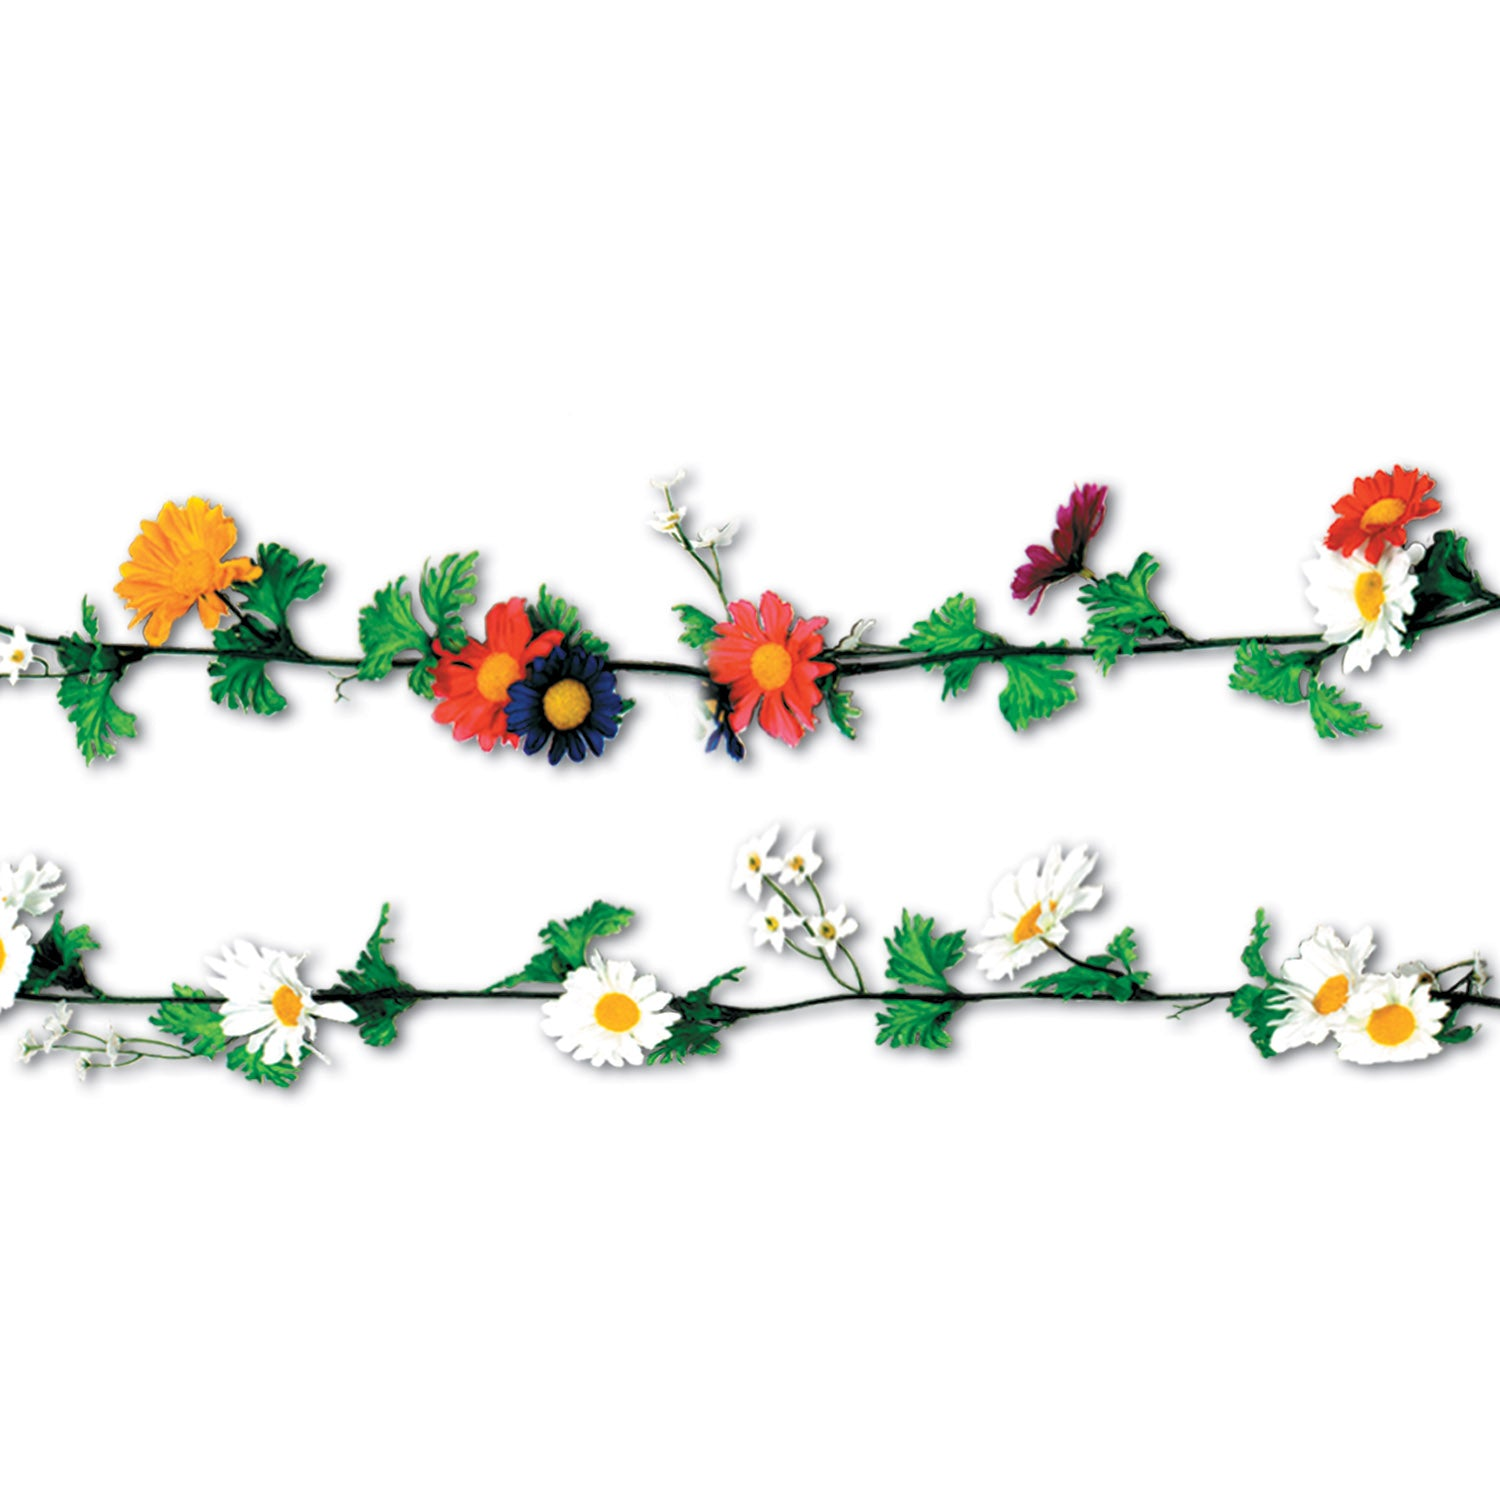 Daisy Garlands by Beistle - Spring/Summer Theme Decorations